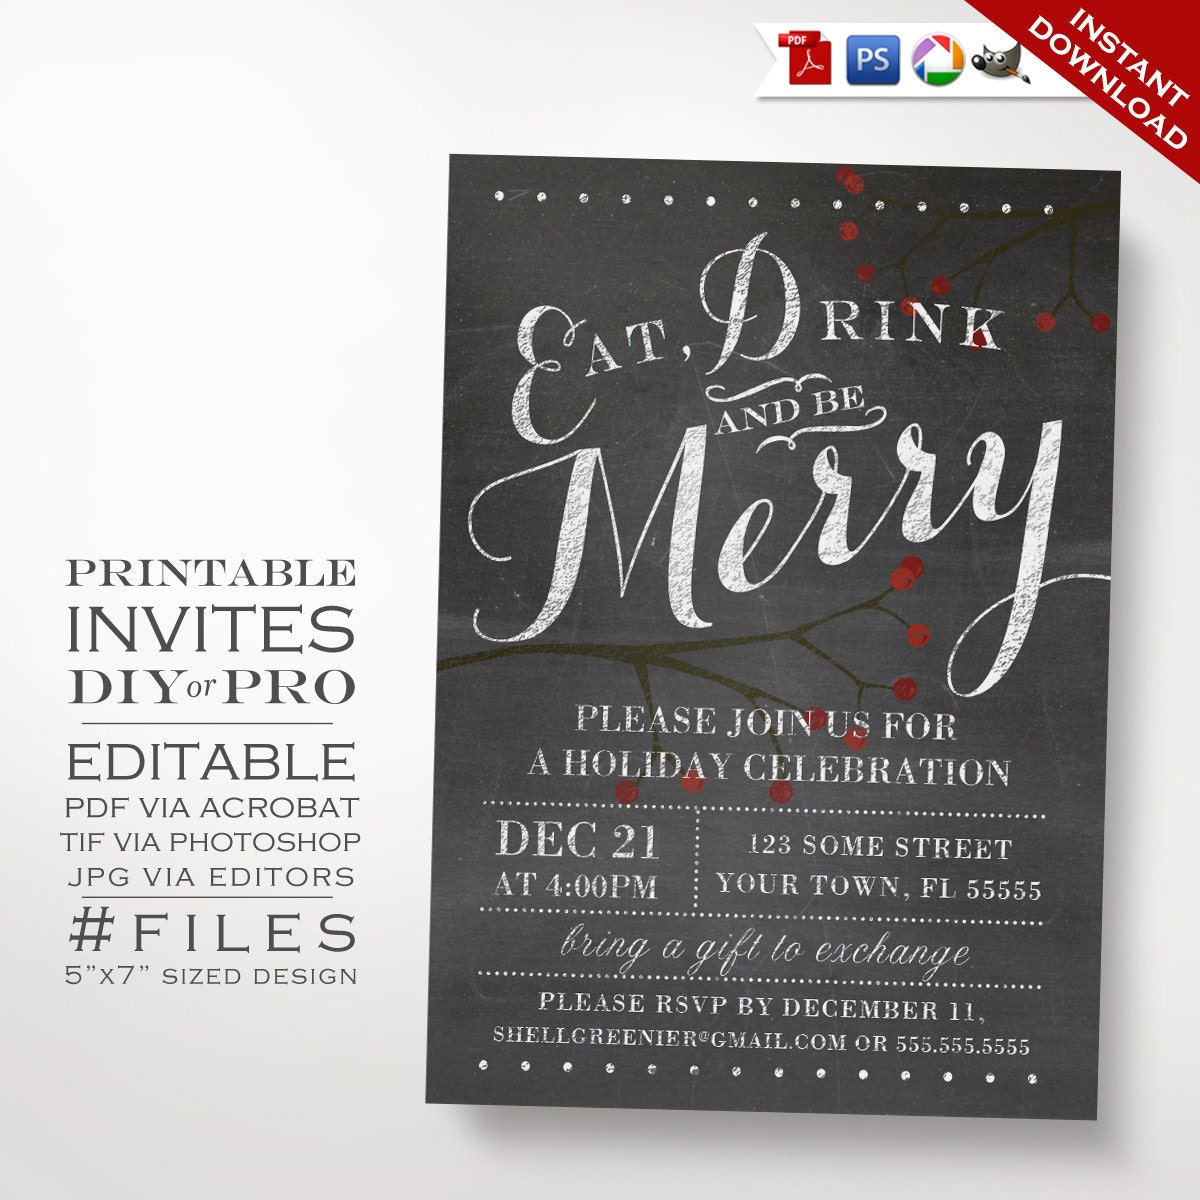 christmas invites christmas invitation template winter chalkboard holiday party invitation printable diy christmas party invitation editable holiday event